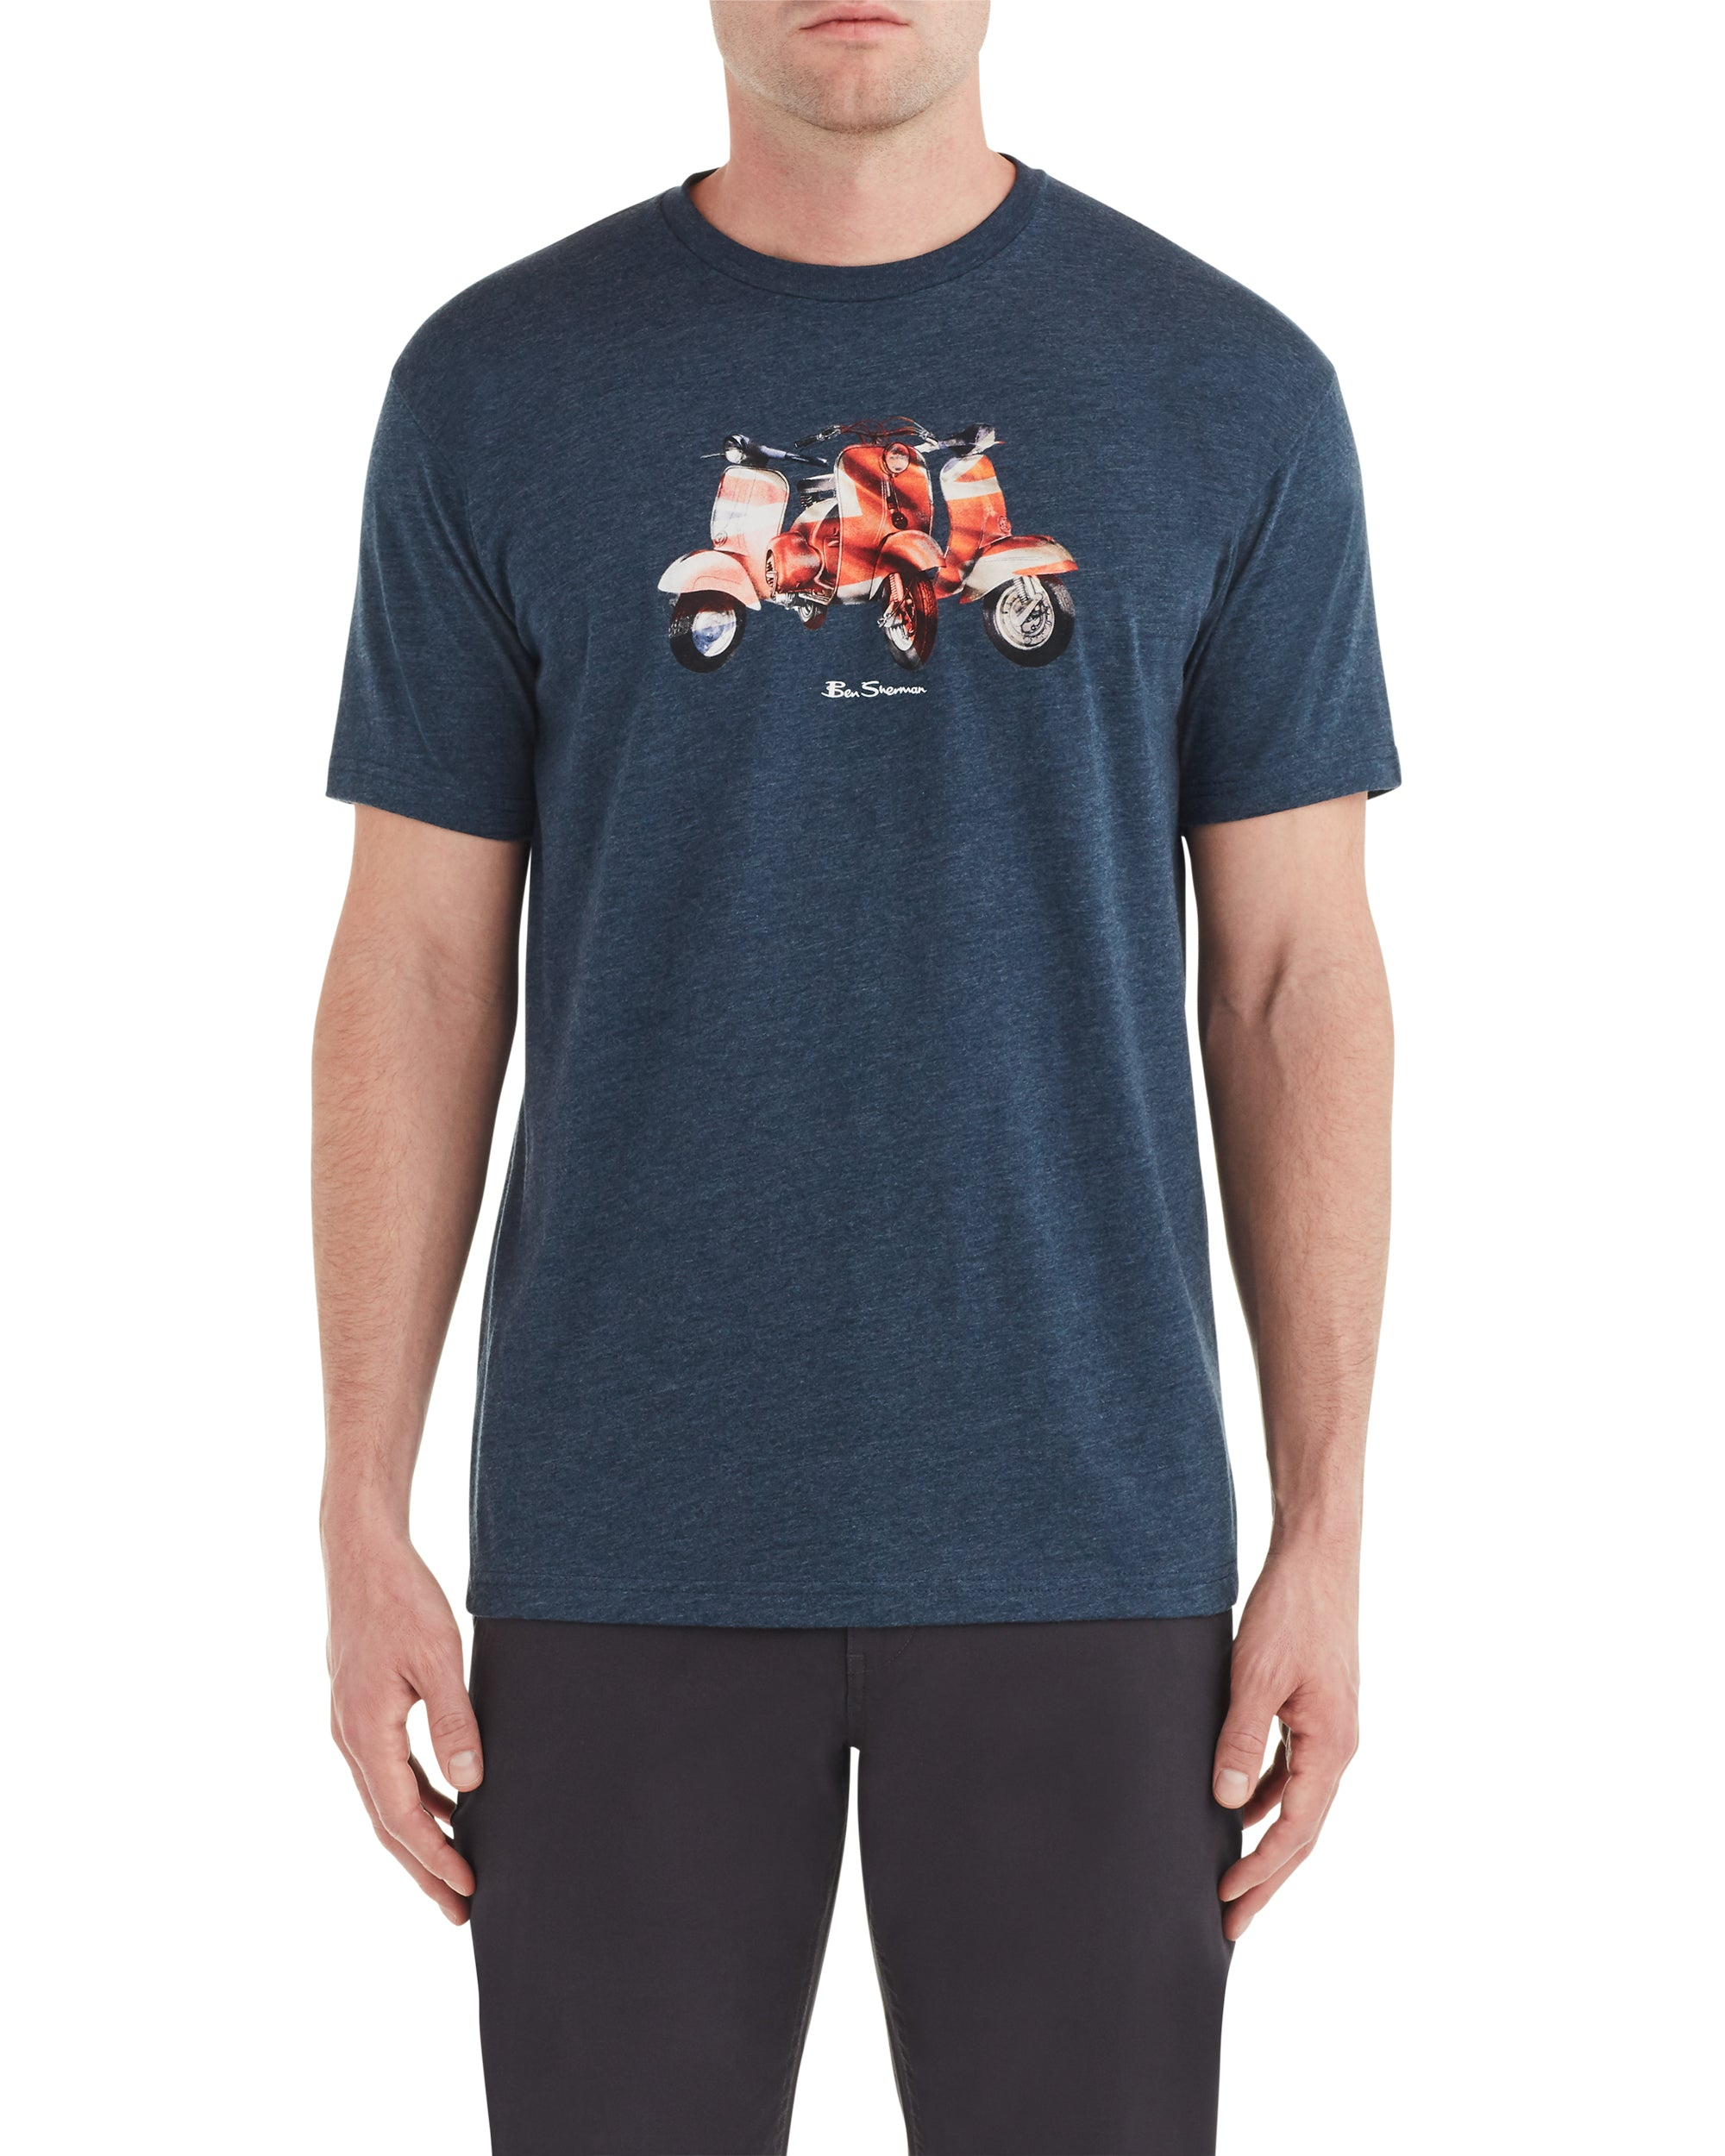 Triple Scooter Graphic Tee - Ink